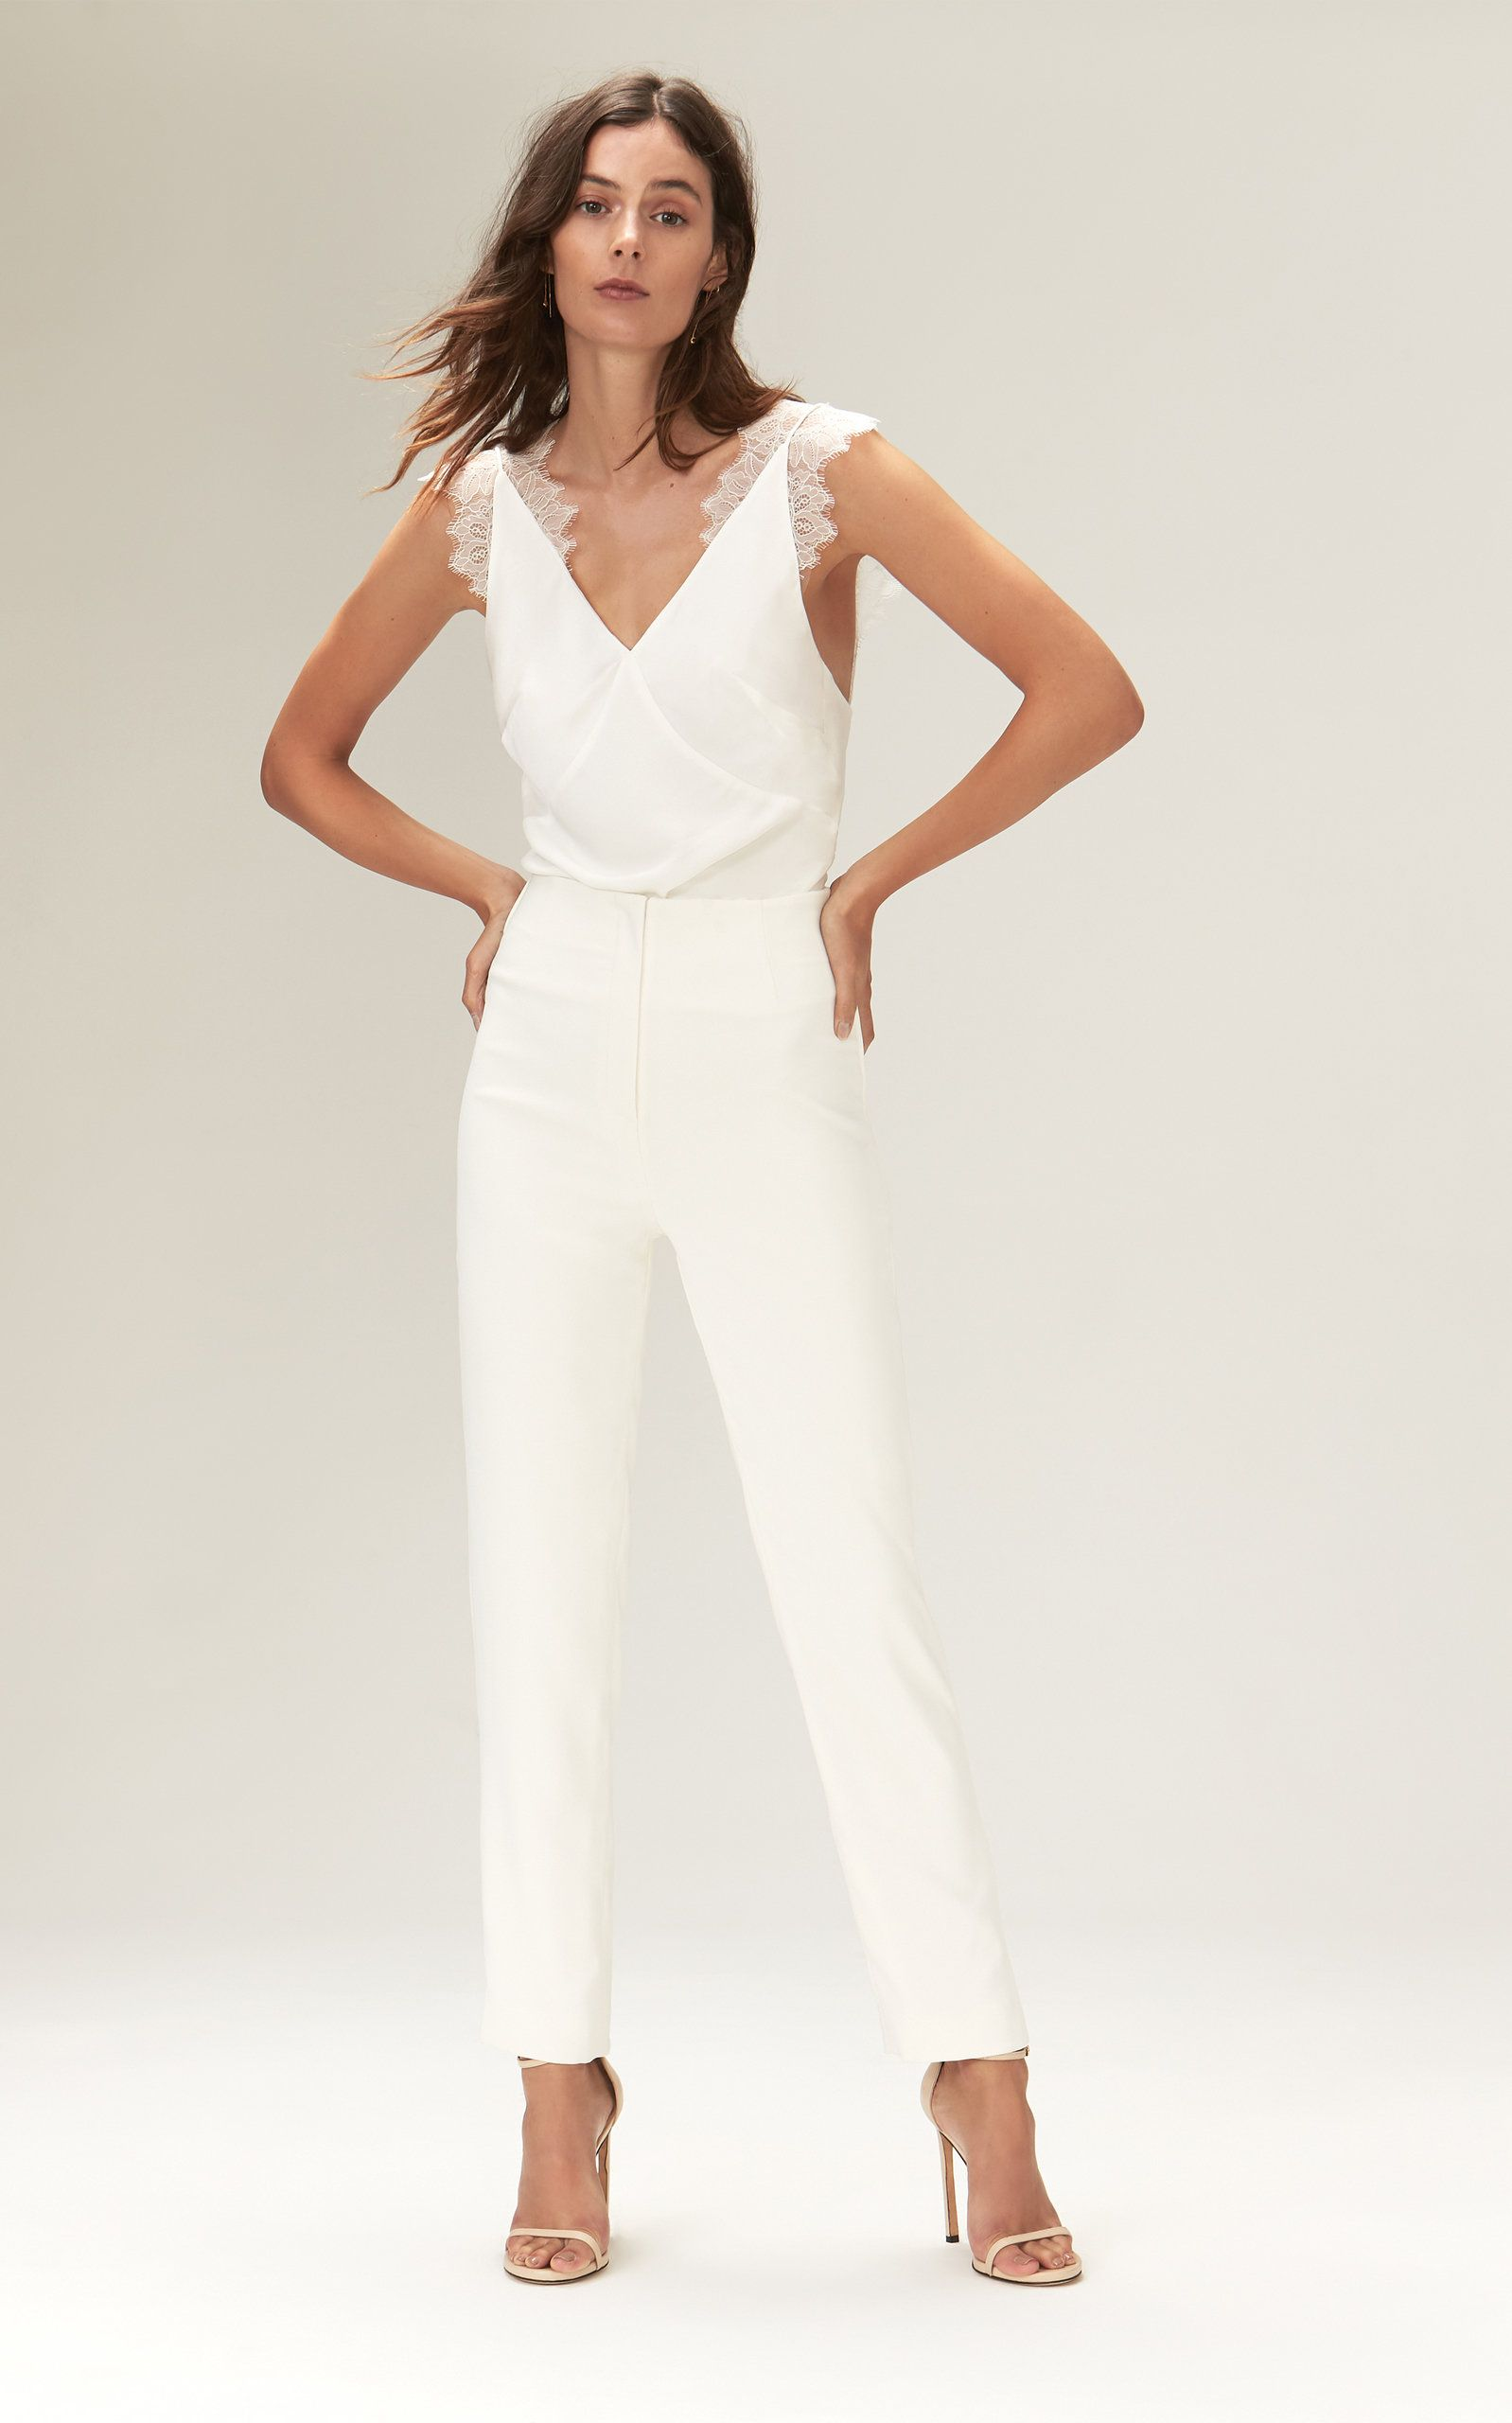 5134b3b7ab96 Lorraine Crepe Bodysuit With Chantilly Lace Straps by SAVANNAH MILLER for  Preorder on Moda Operandi